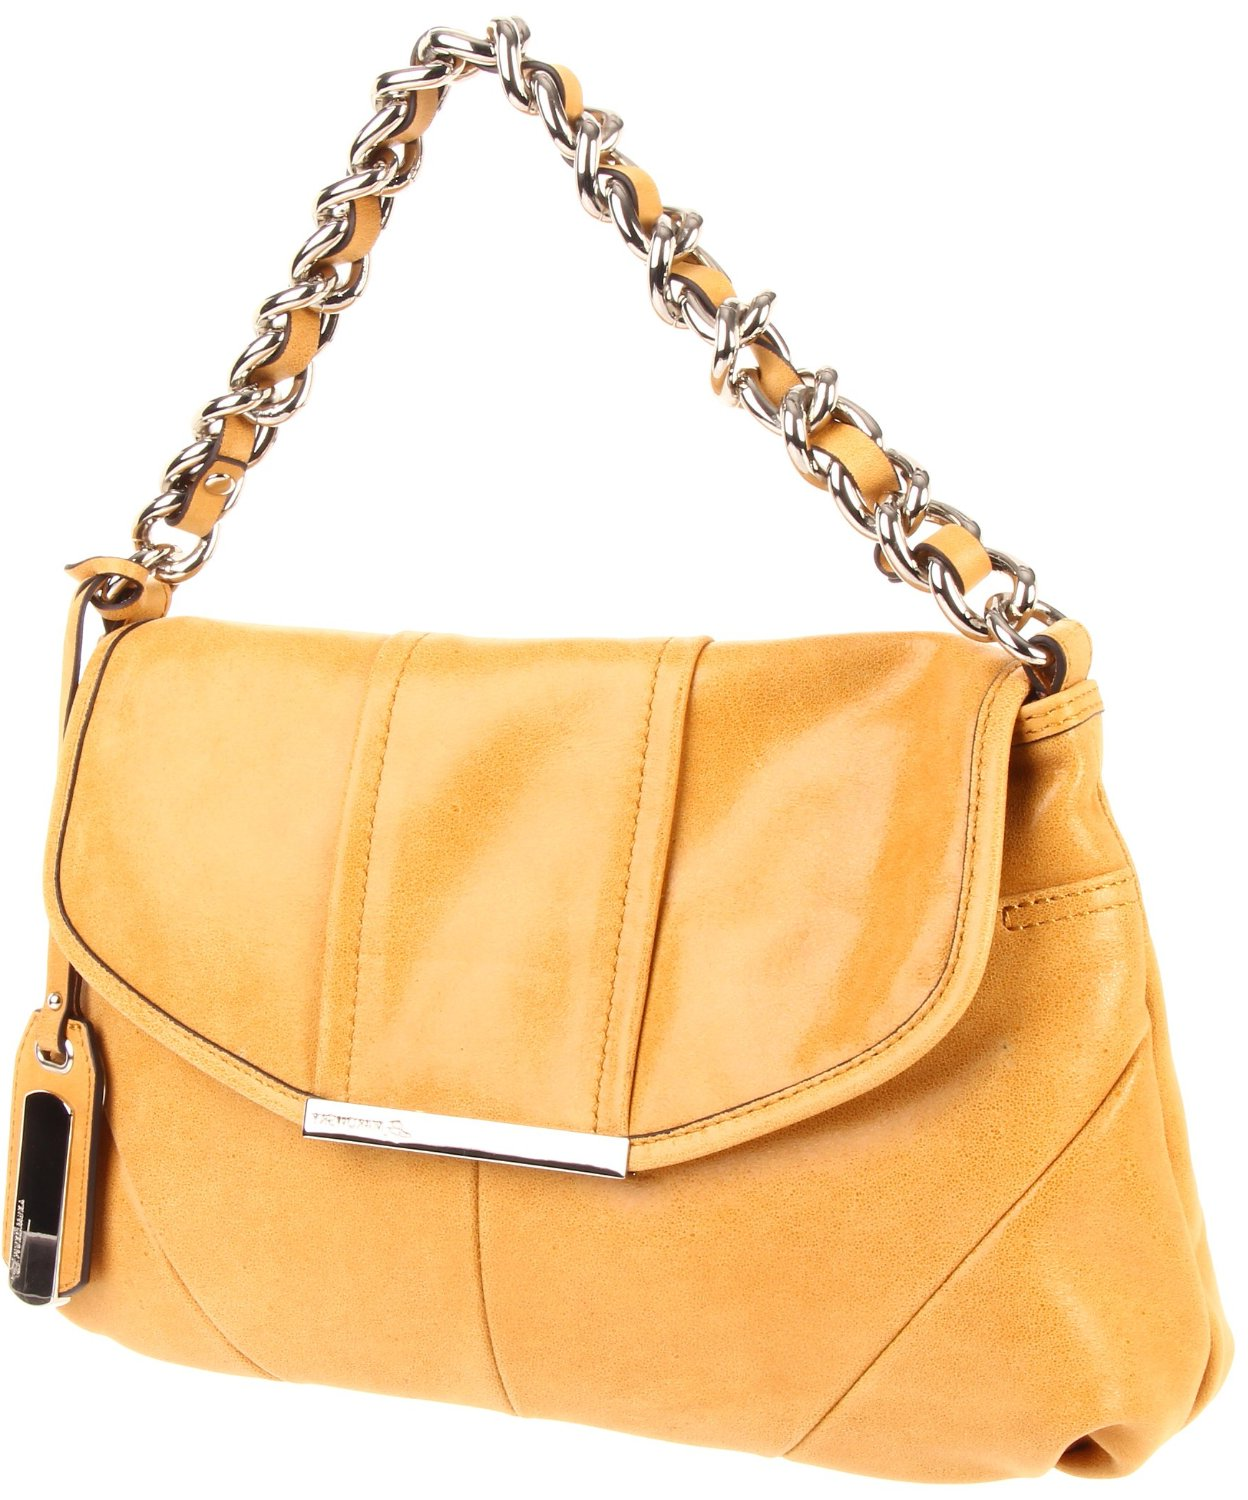 makowsky handbags lucky brand handbags wholesale designer inspired handbags